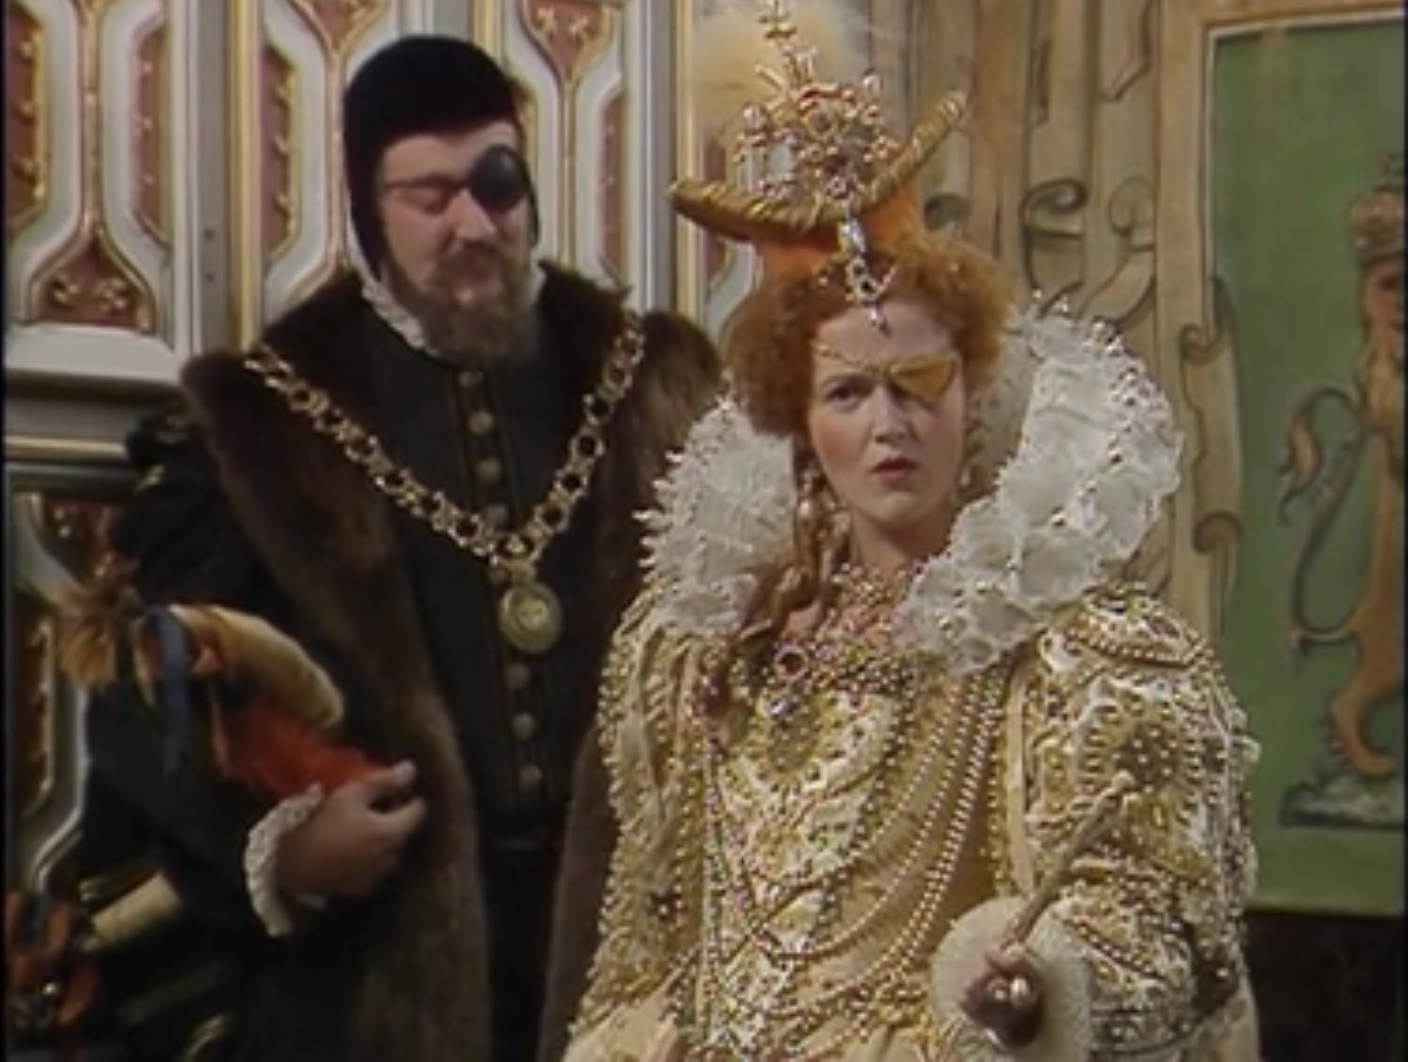 Queeniw wearing eye patch in Blackadder - Talk like a pirate